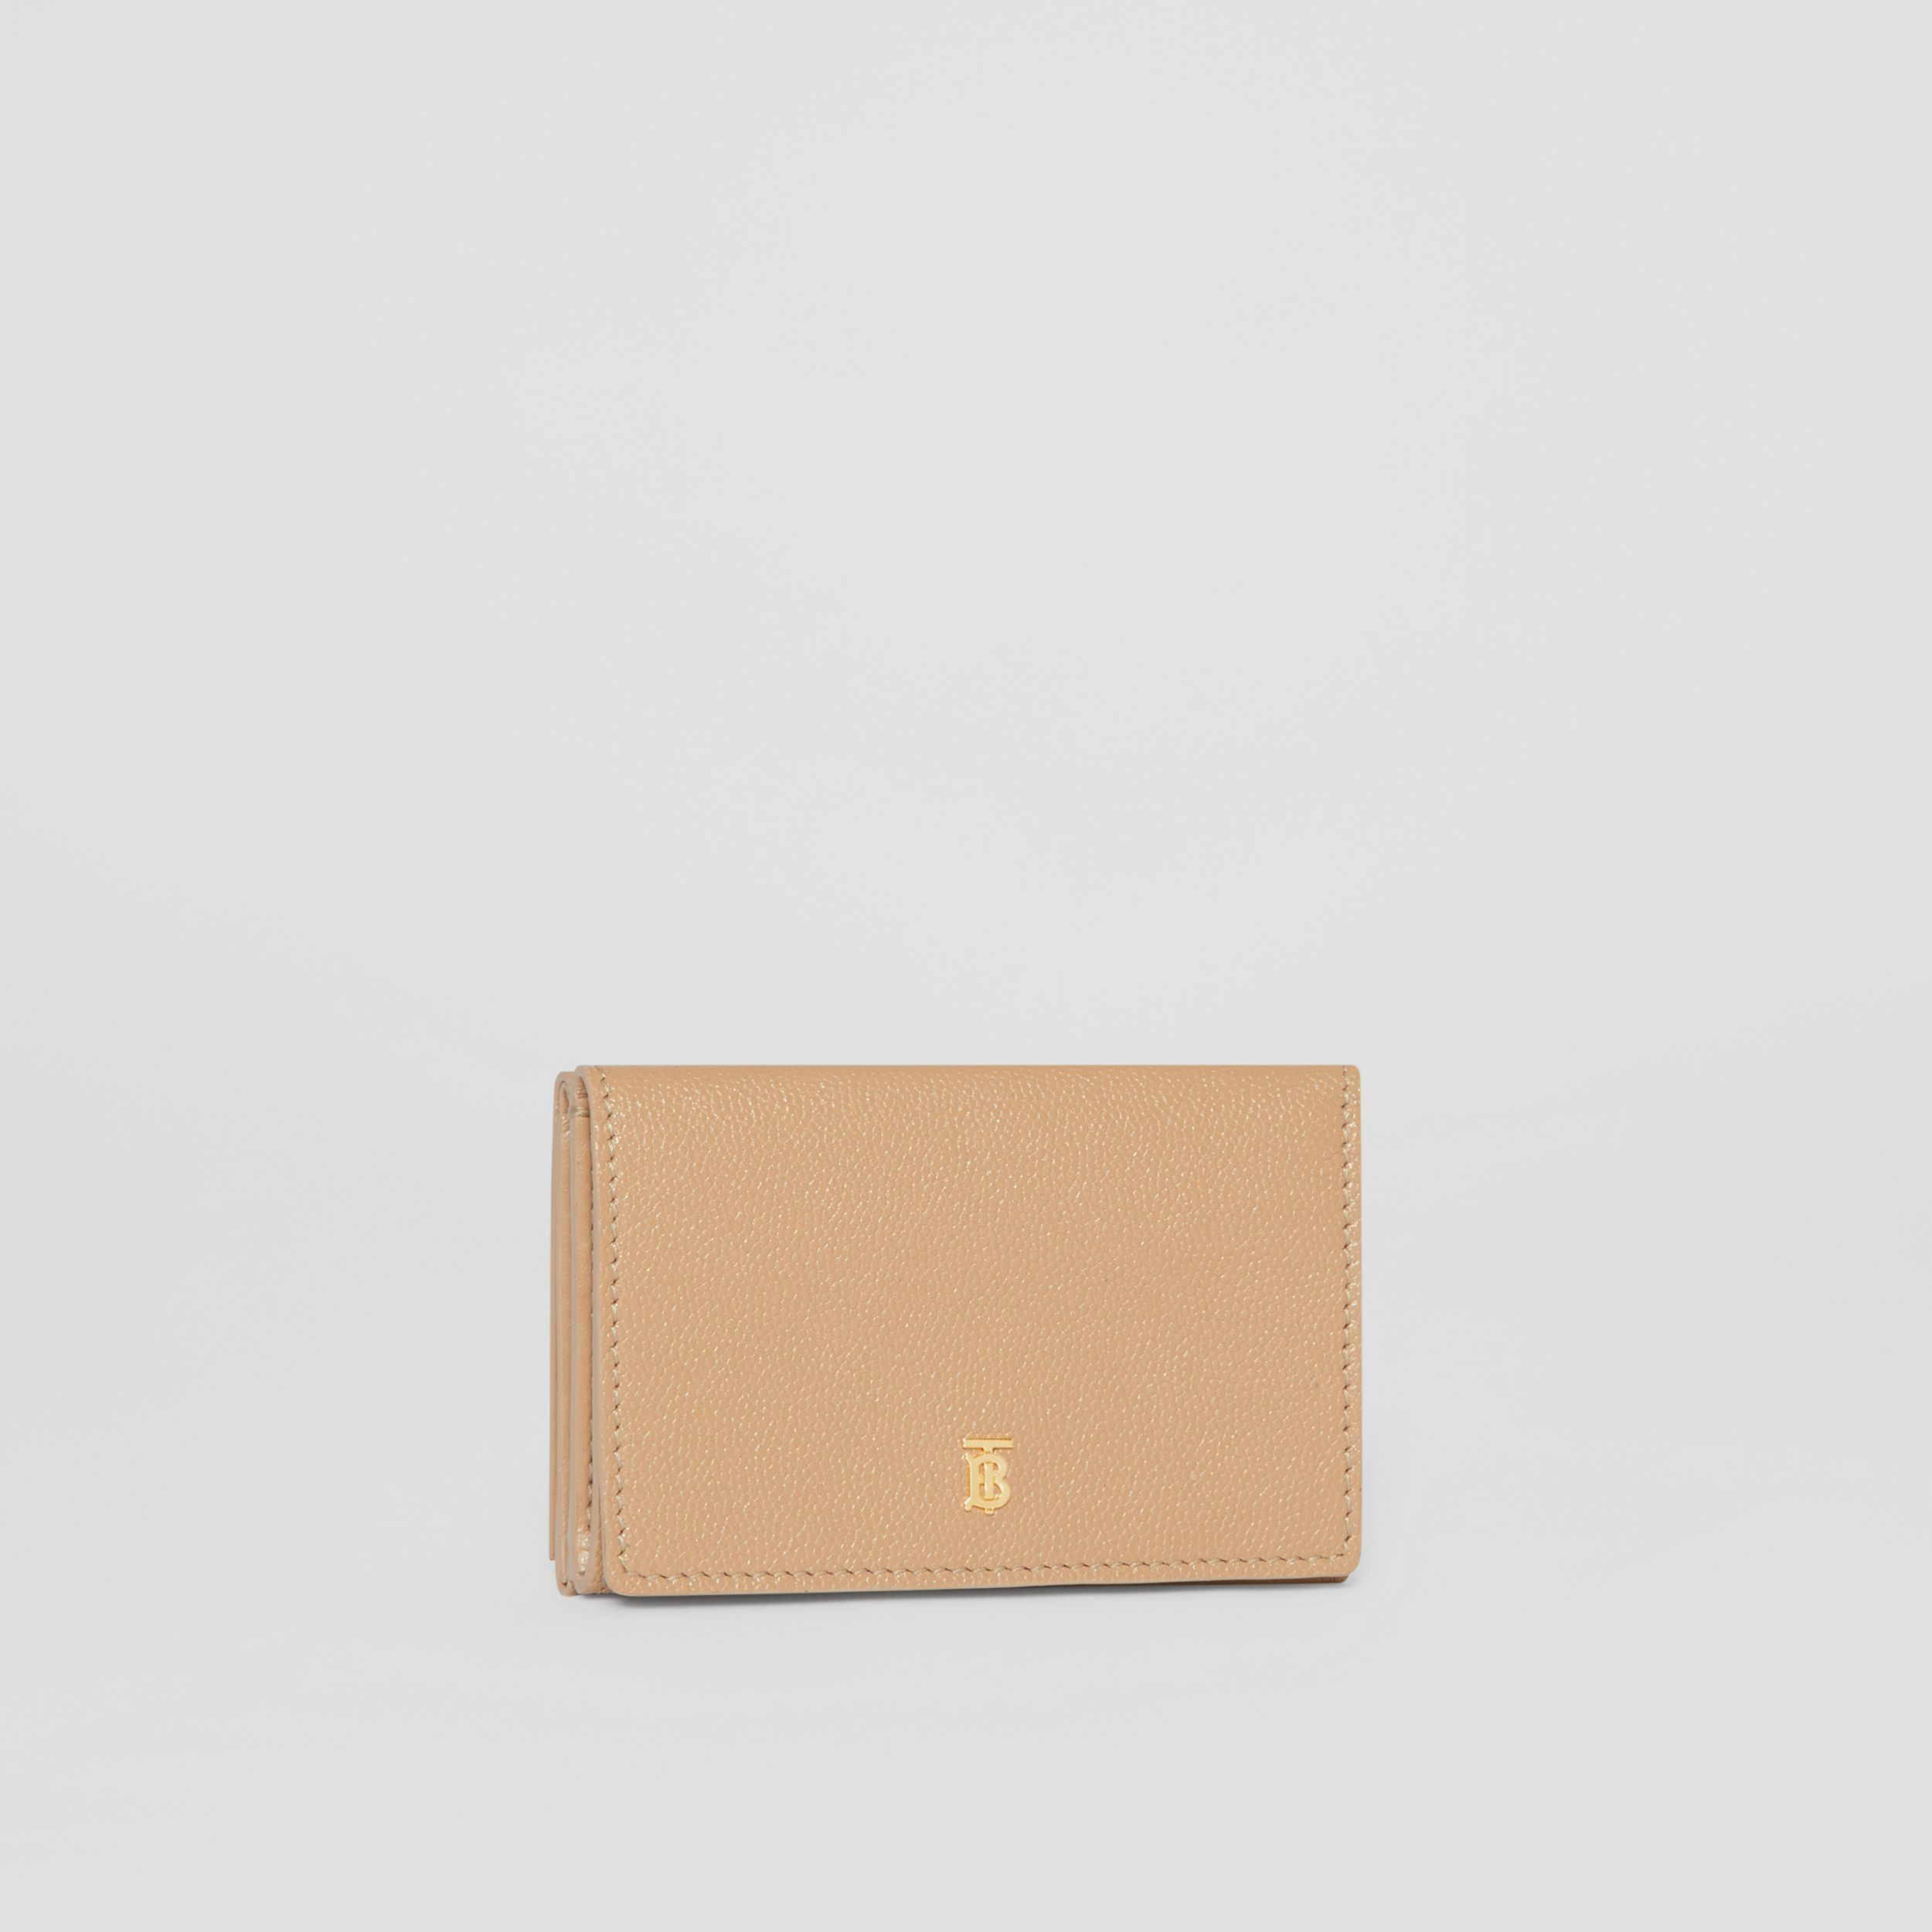 Small Grainy Leather Folding Wallet in Archive Beige - Women | Burberry Australia - 4